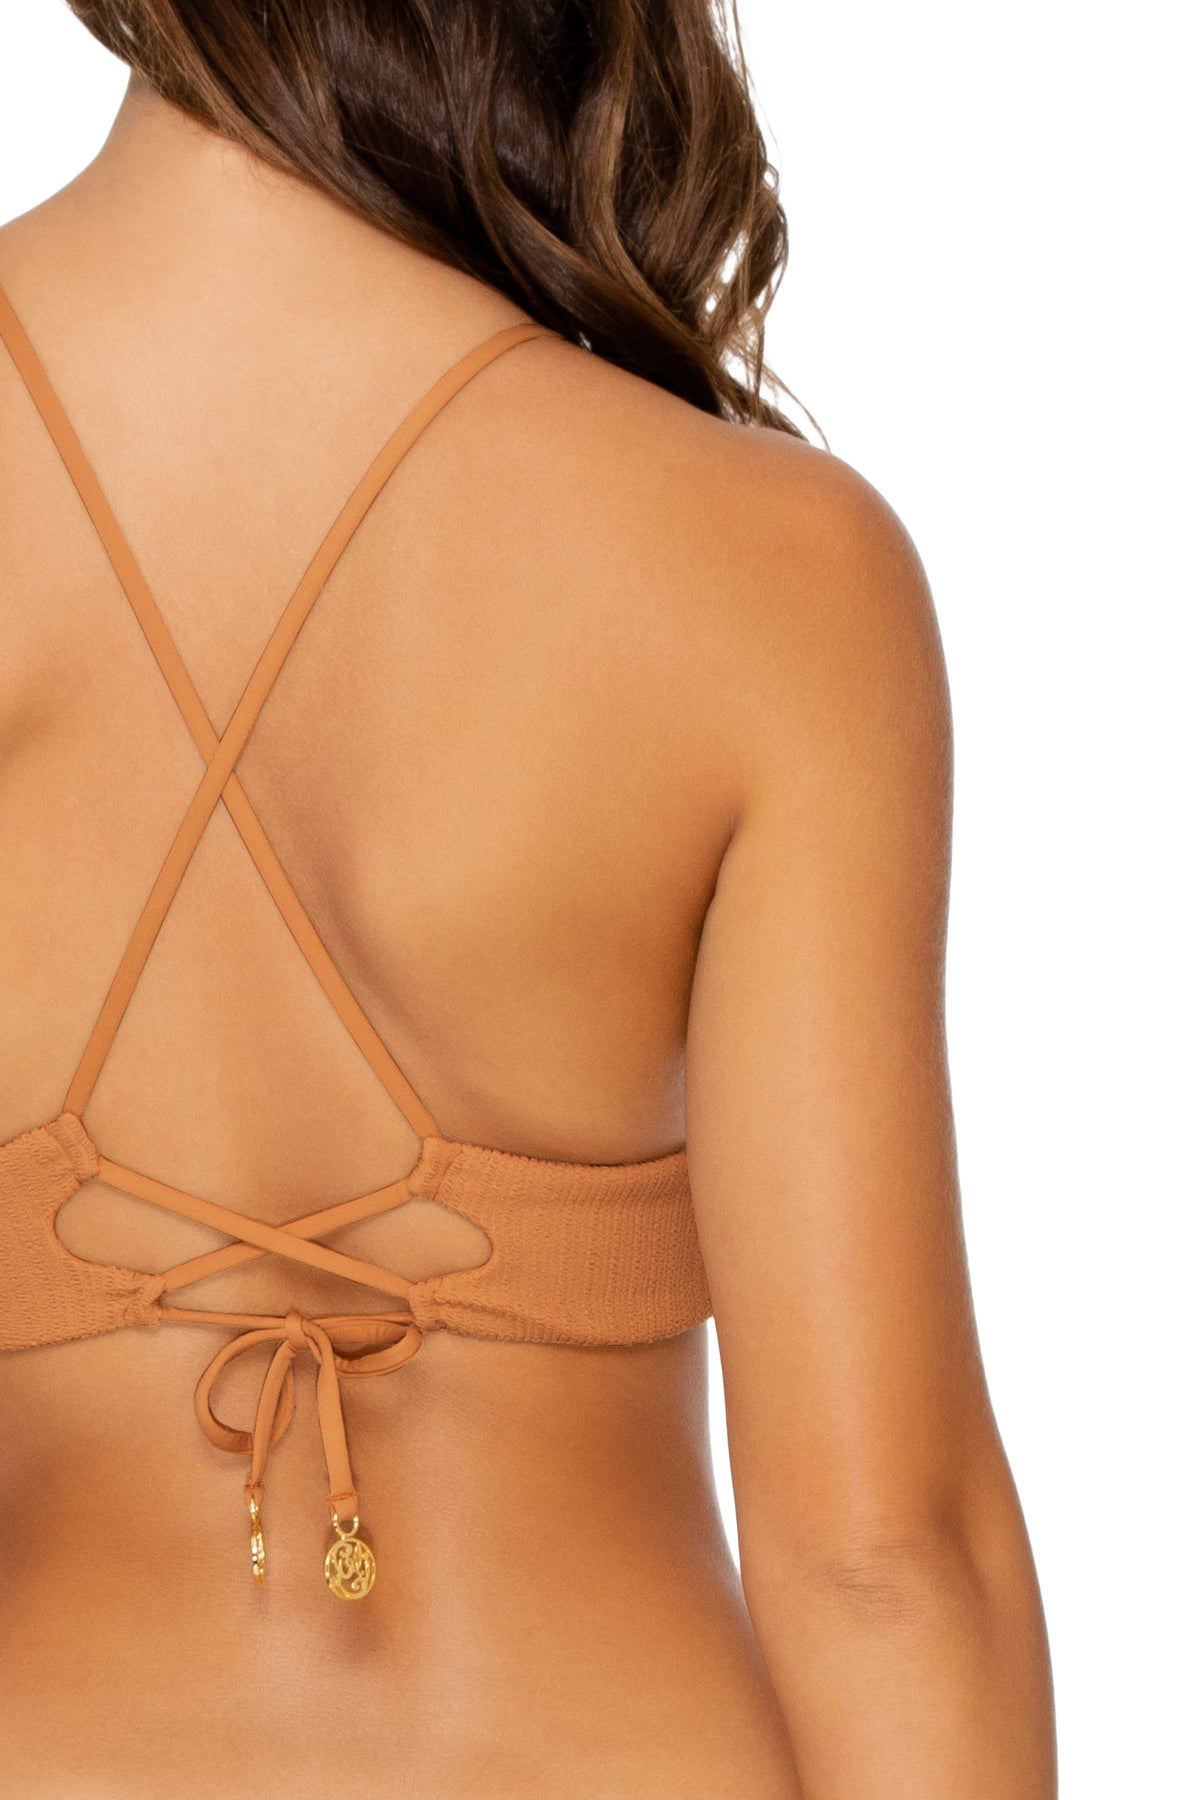 JAGGED BOMBSHELL - Cross Back Bustier Top & Strappy Brazilian Ruched Back Bottom • Caramelo